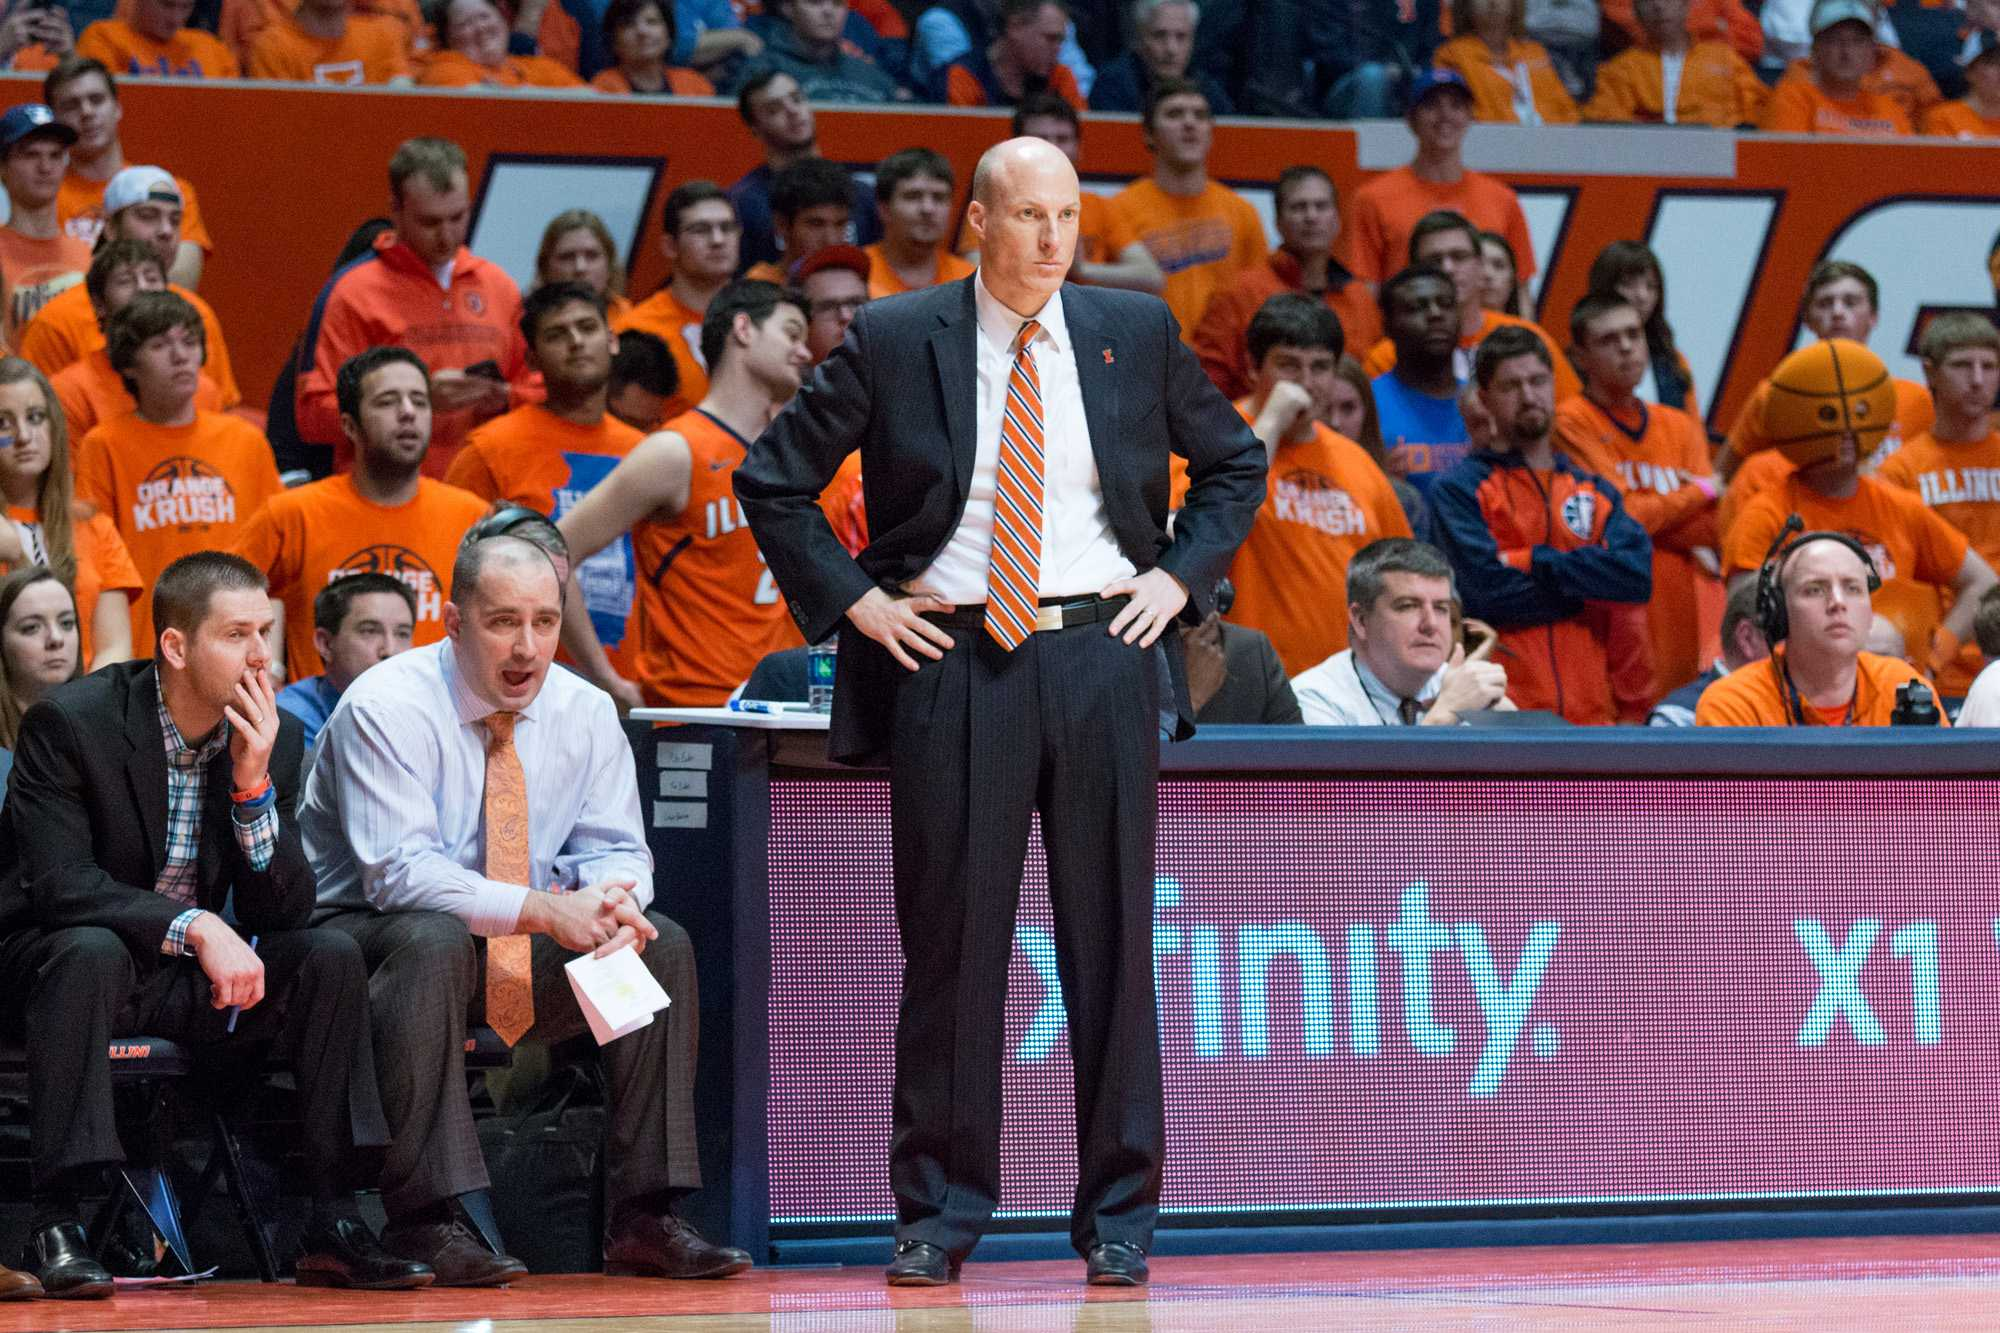 Alex+Roux+explains+what+DaMonte+Williams+could+mean+to+the+future+of+Illini+basketball%26nbsp%3B